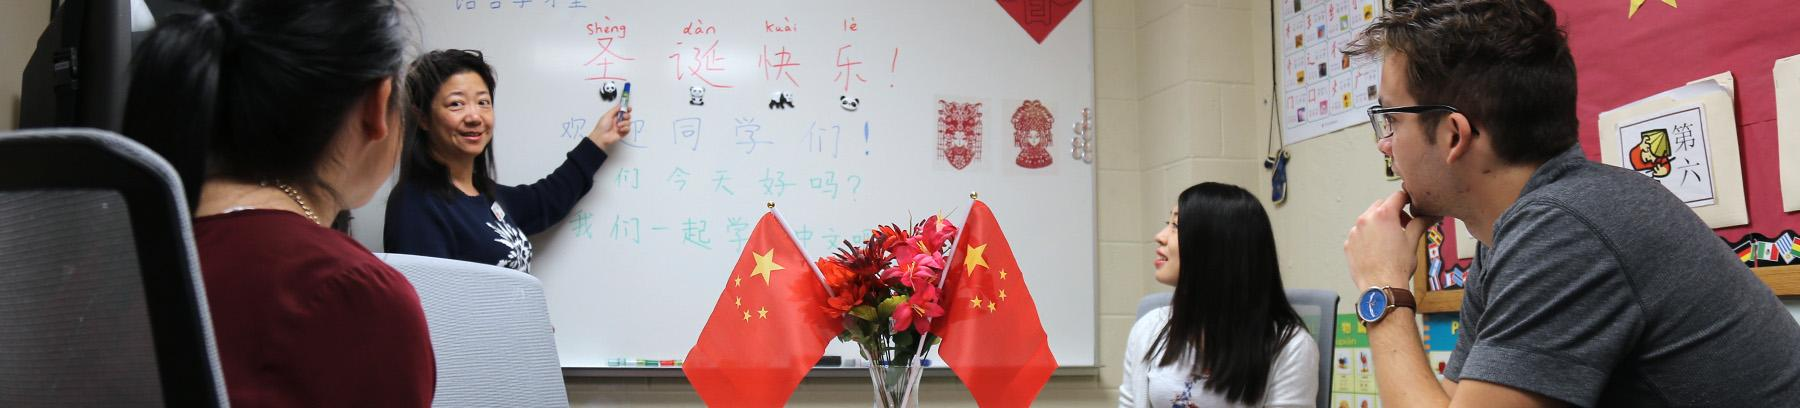 Chinese professor teaching students in front of whiteboard.